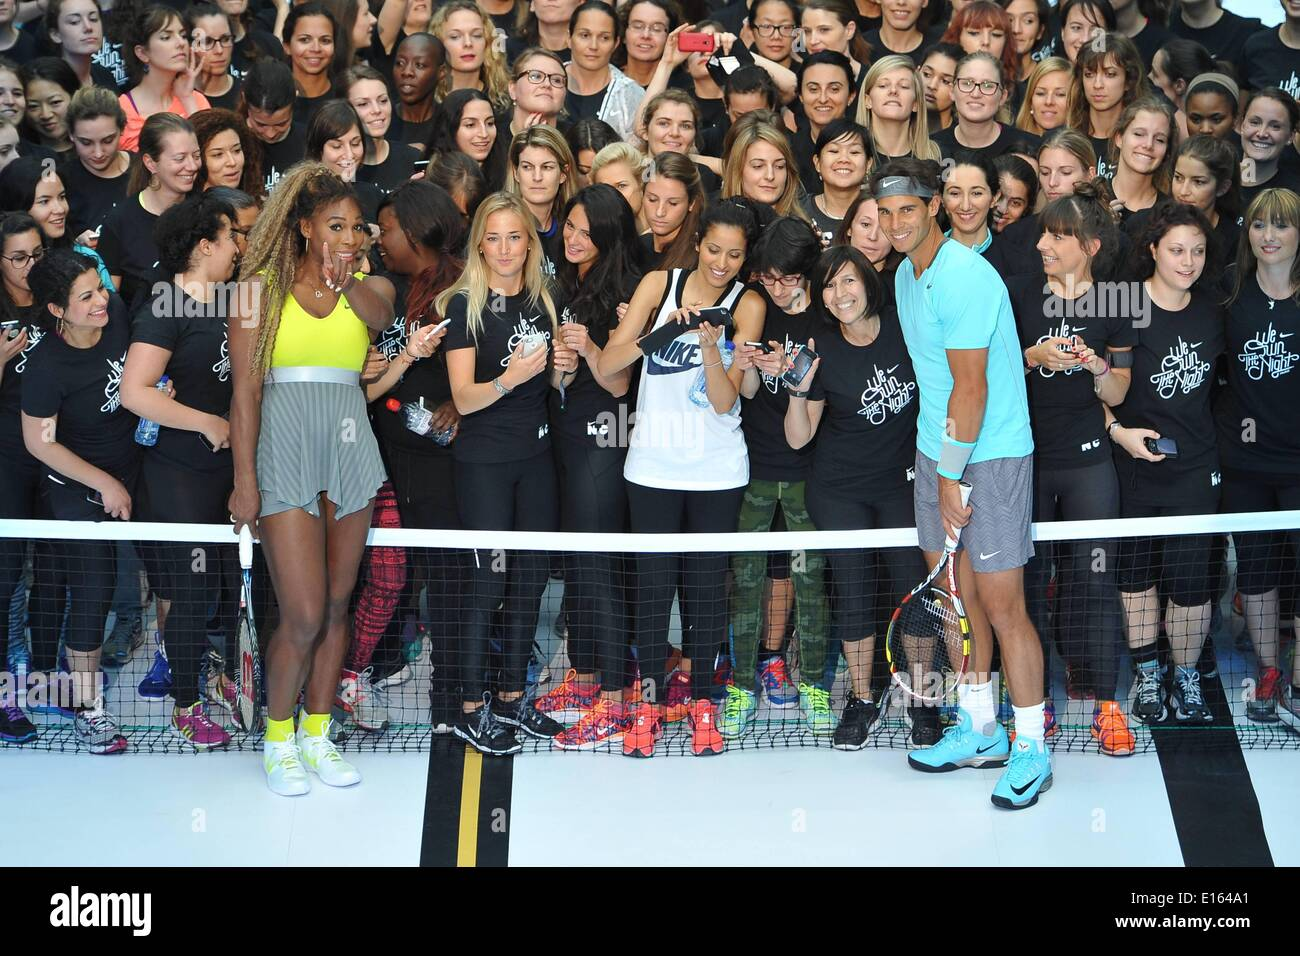 Paris, France. 23rd May, 2014. Molitor Swimming Pool, Paris, France. 23rd May, 2014. US tennis player Serena Williams (L) and Spain's tennis player Rafael Nadal are pictured with the children after exchanging balls on a tennis court set up in a swimming pool at the Molitor luxury swimming pool complex in Paris as part of a Nike Tennis promotion Credit:  Action Plus Sports/Alamy Live News - Stock Image